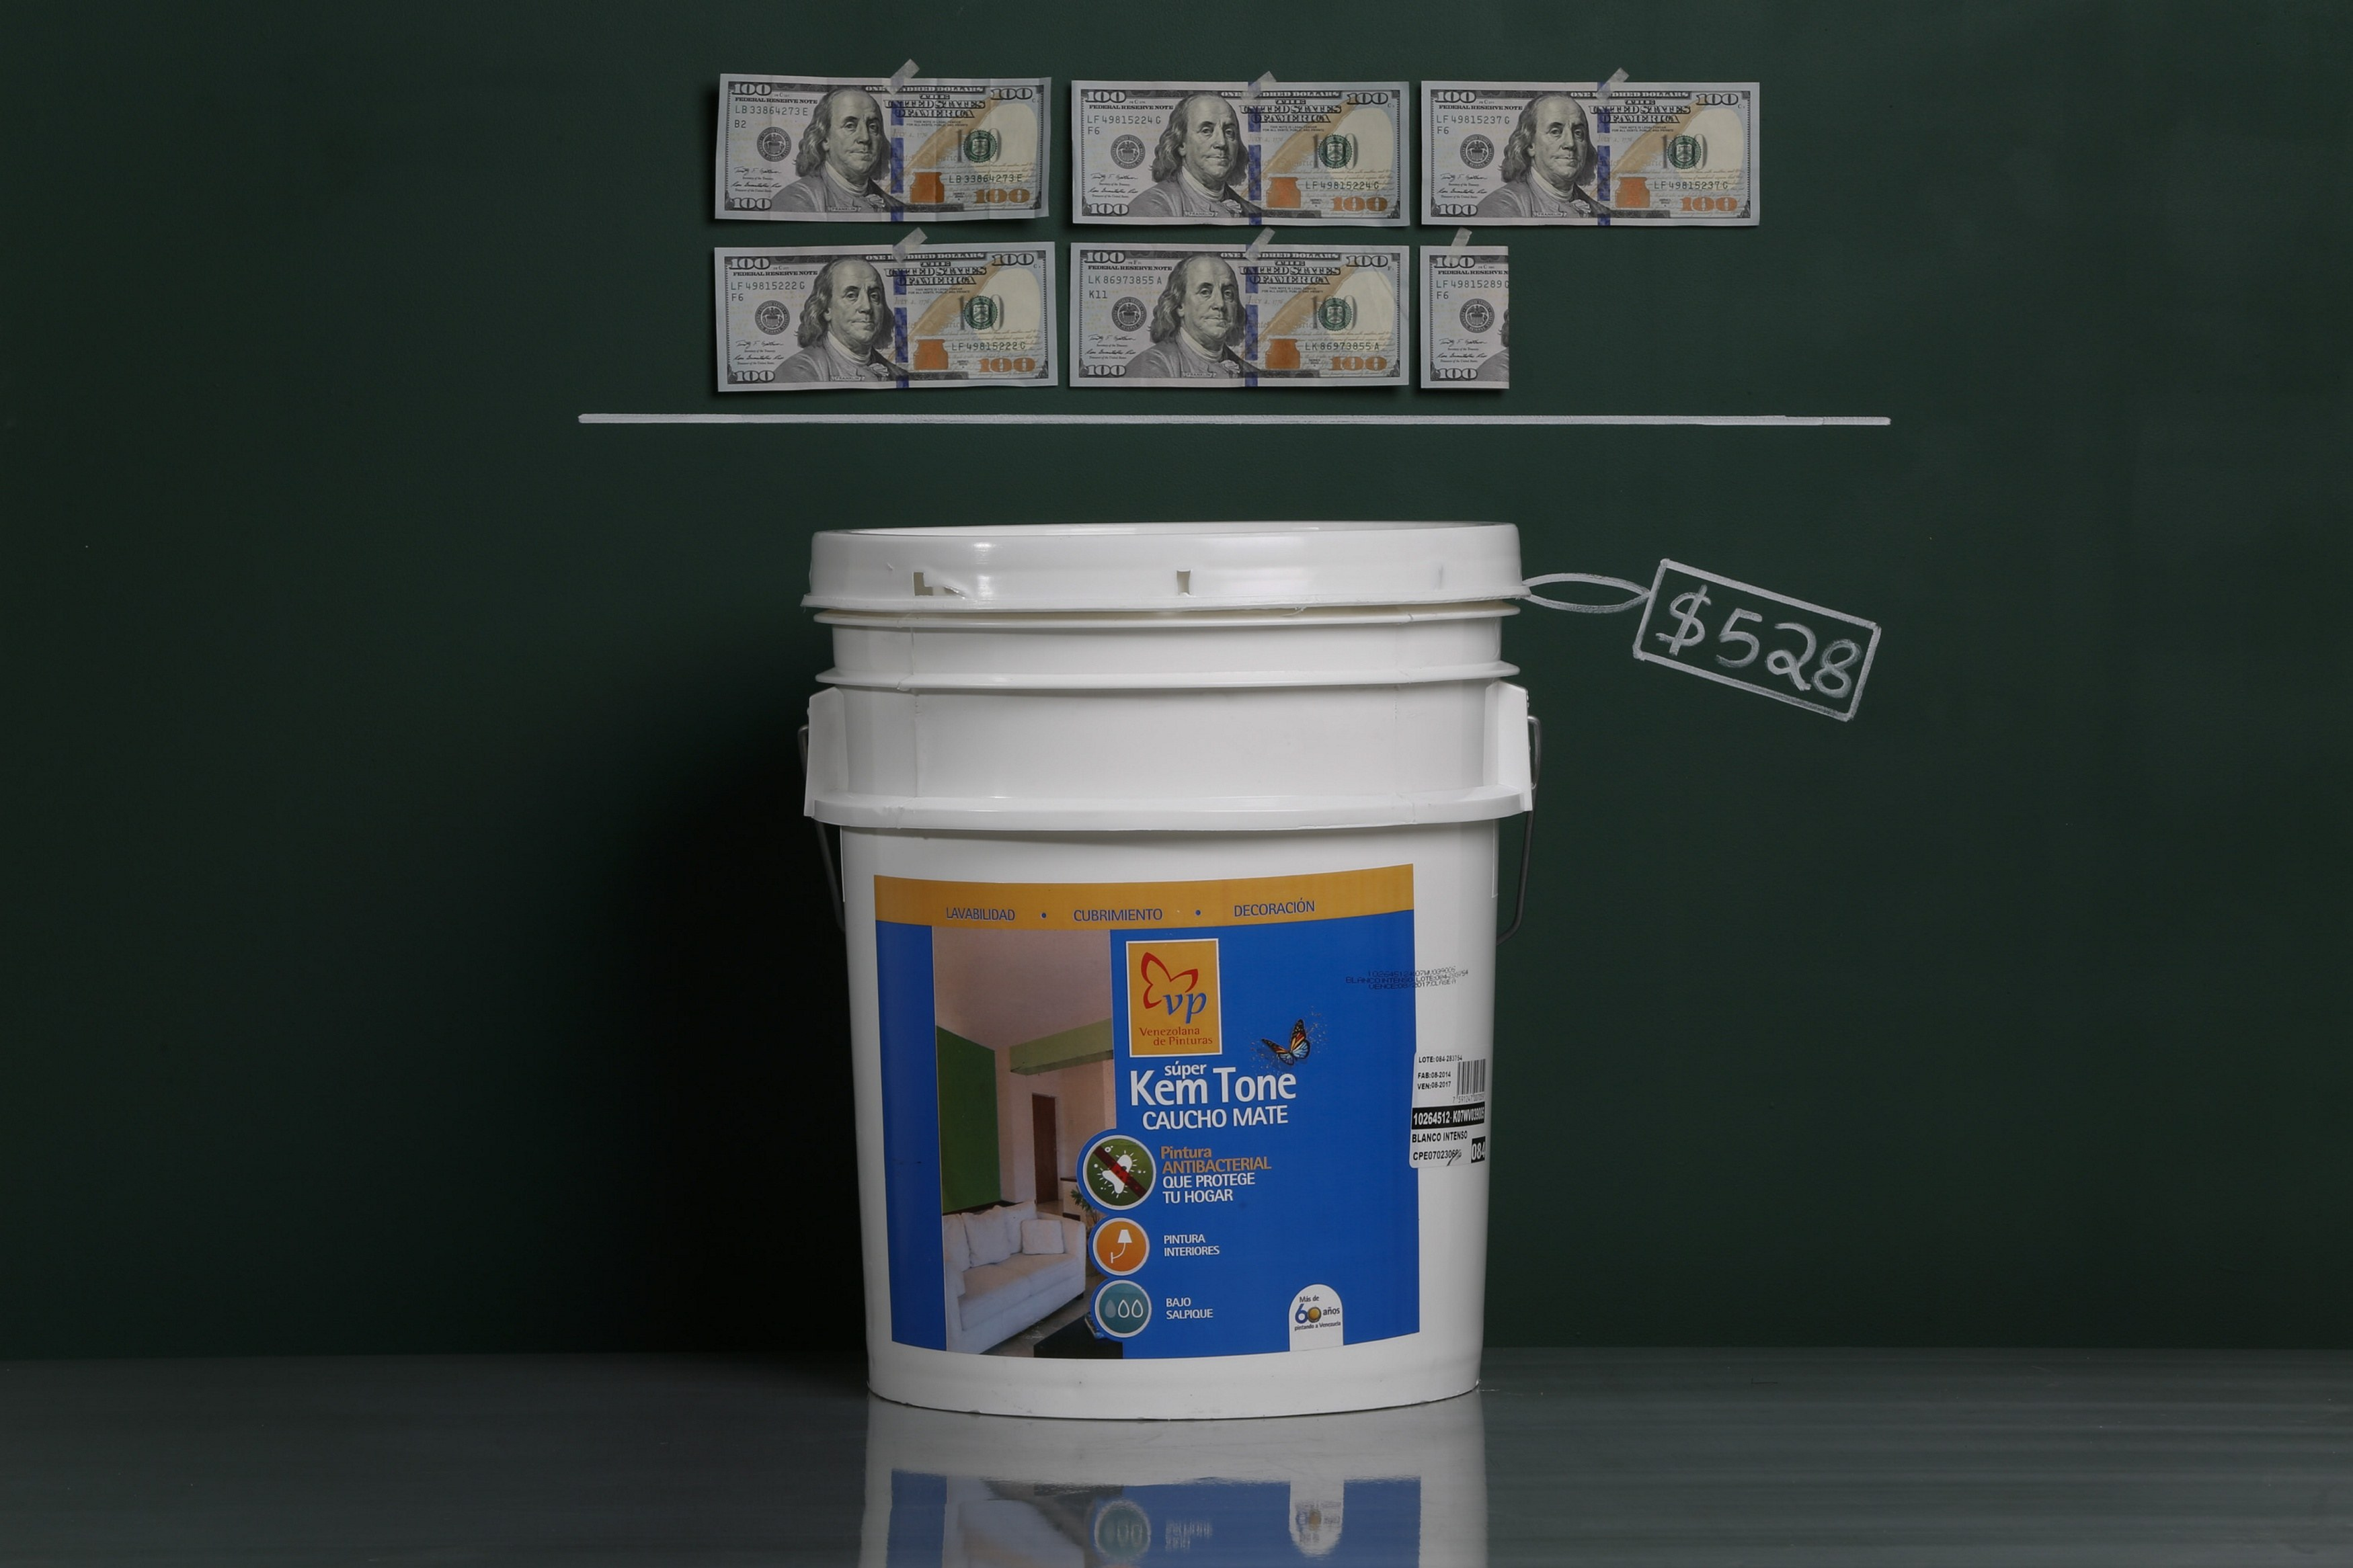 A five-gallon bucket of house paint as photographed with an illustrative price tag of $528 in Caracas